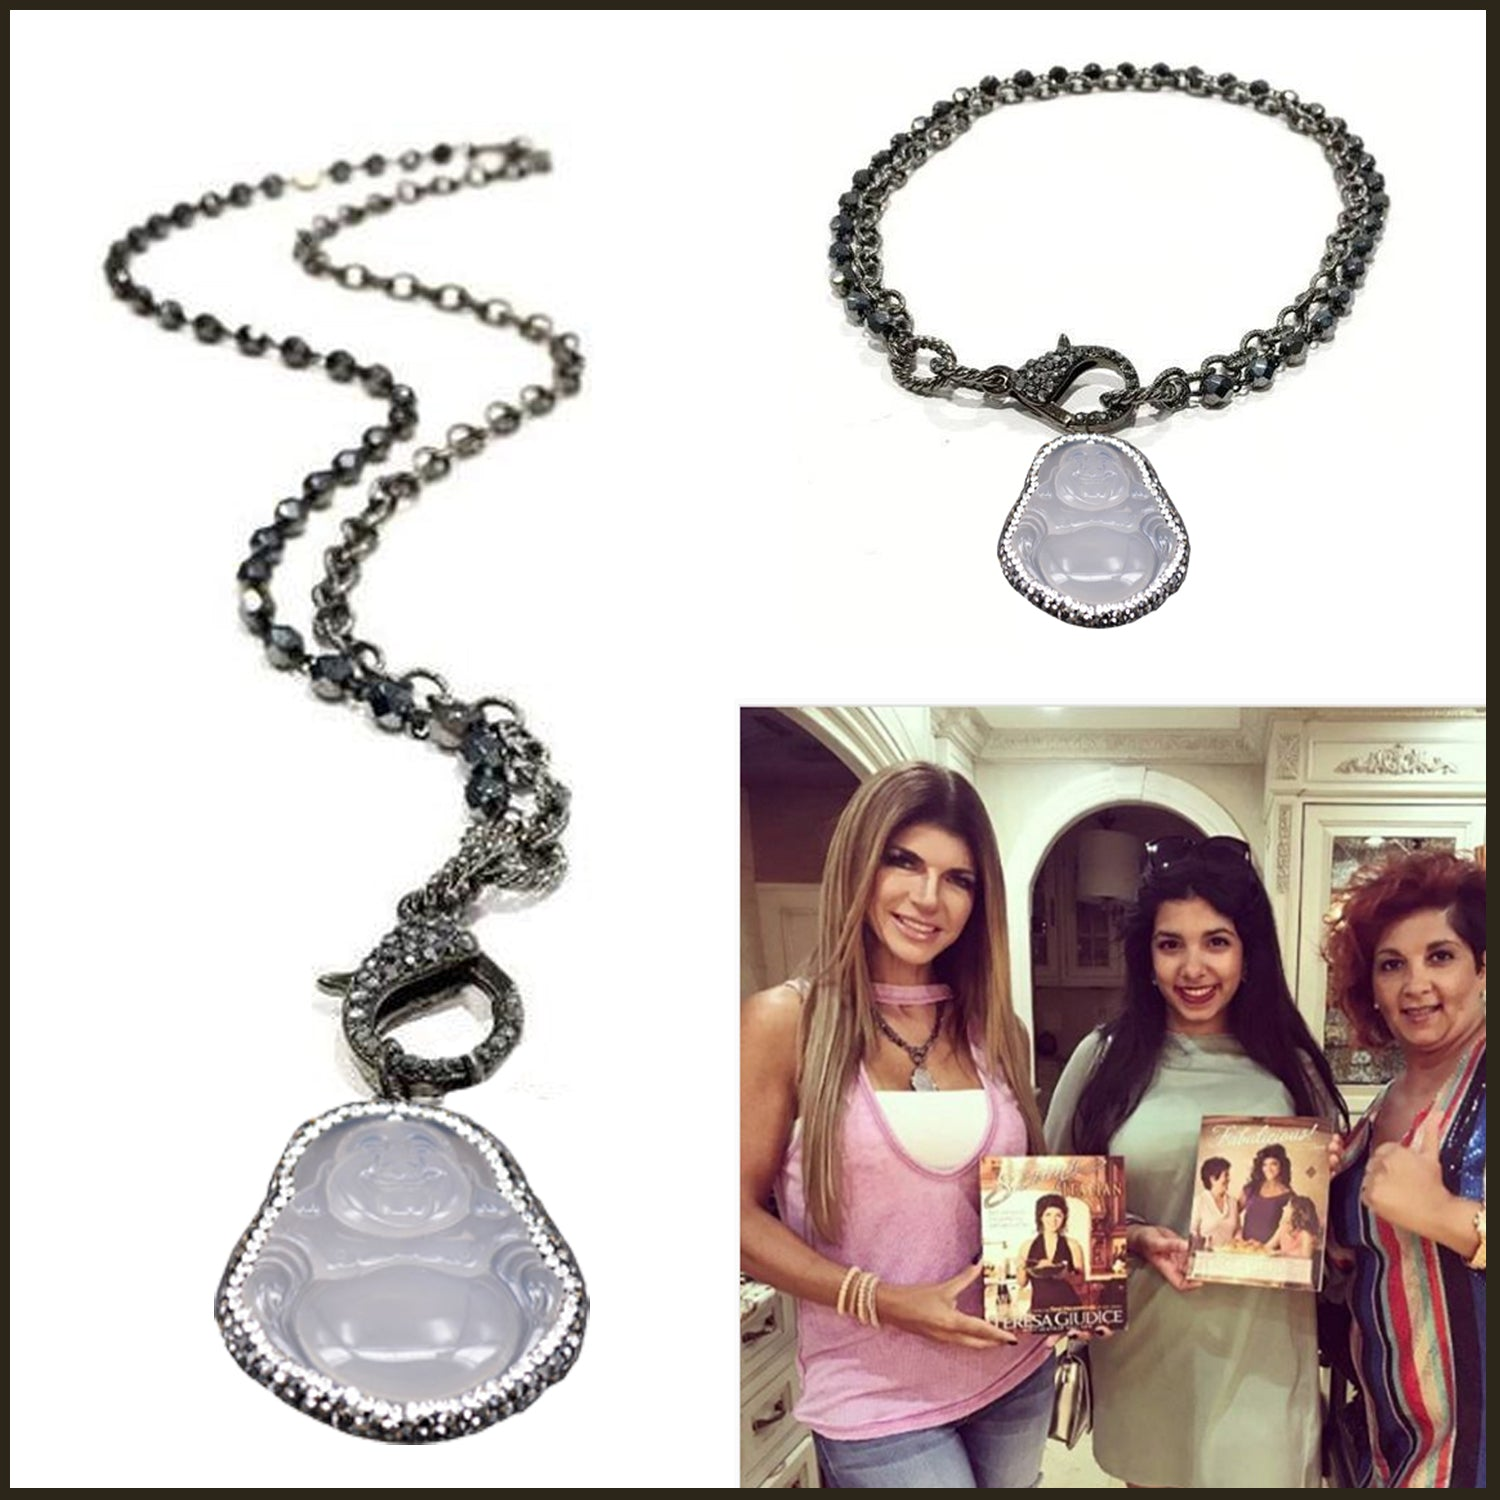 Lisa's Favorite Buddha Necklace